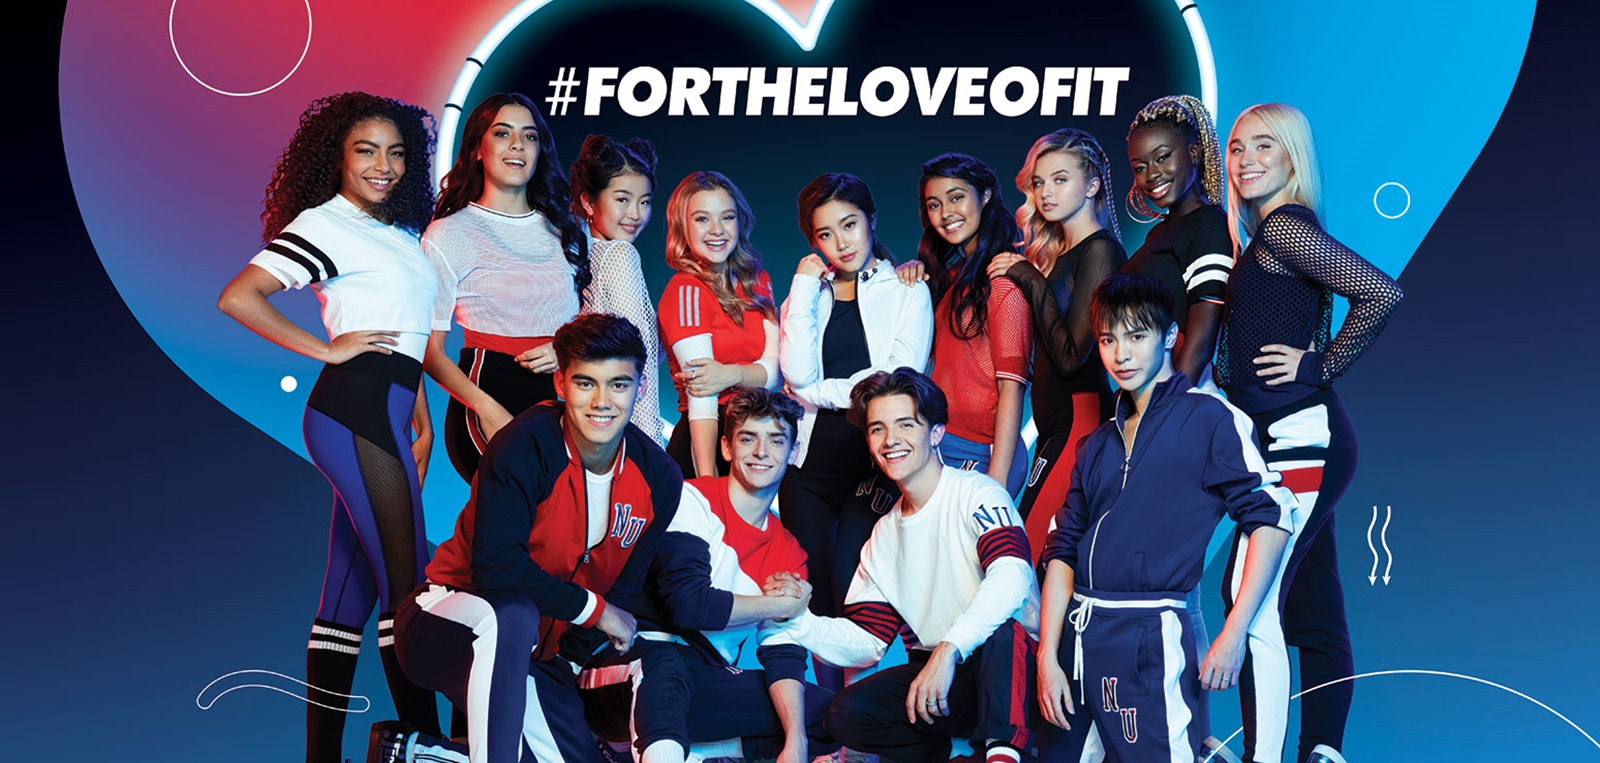 BILLBOARD: Now United de Simon Fuller faz acordo de patrocínio global com a Pepsi